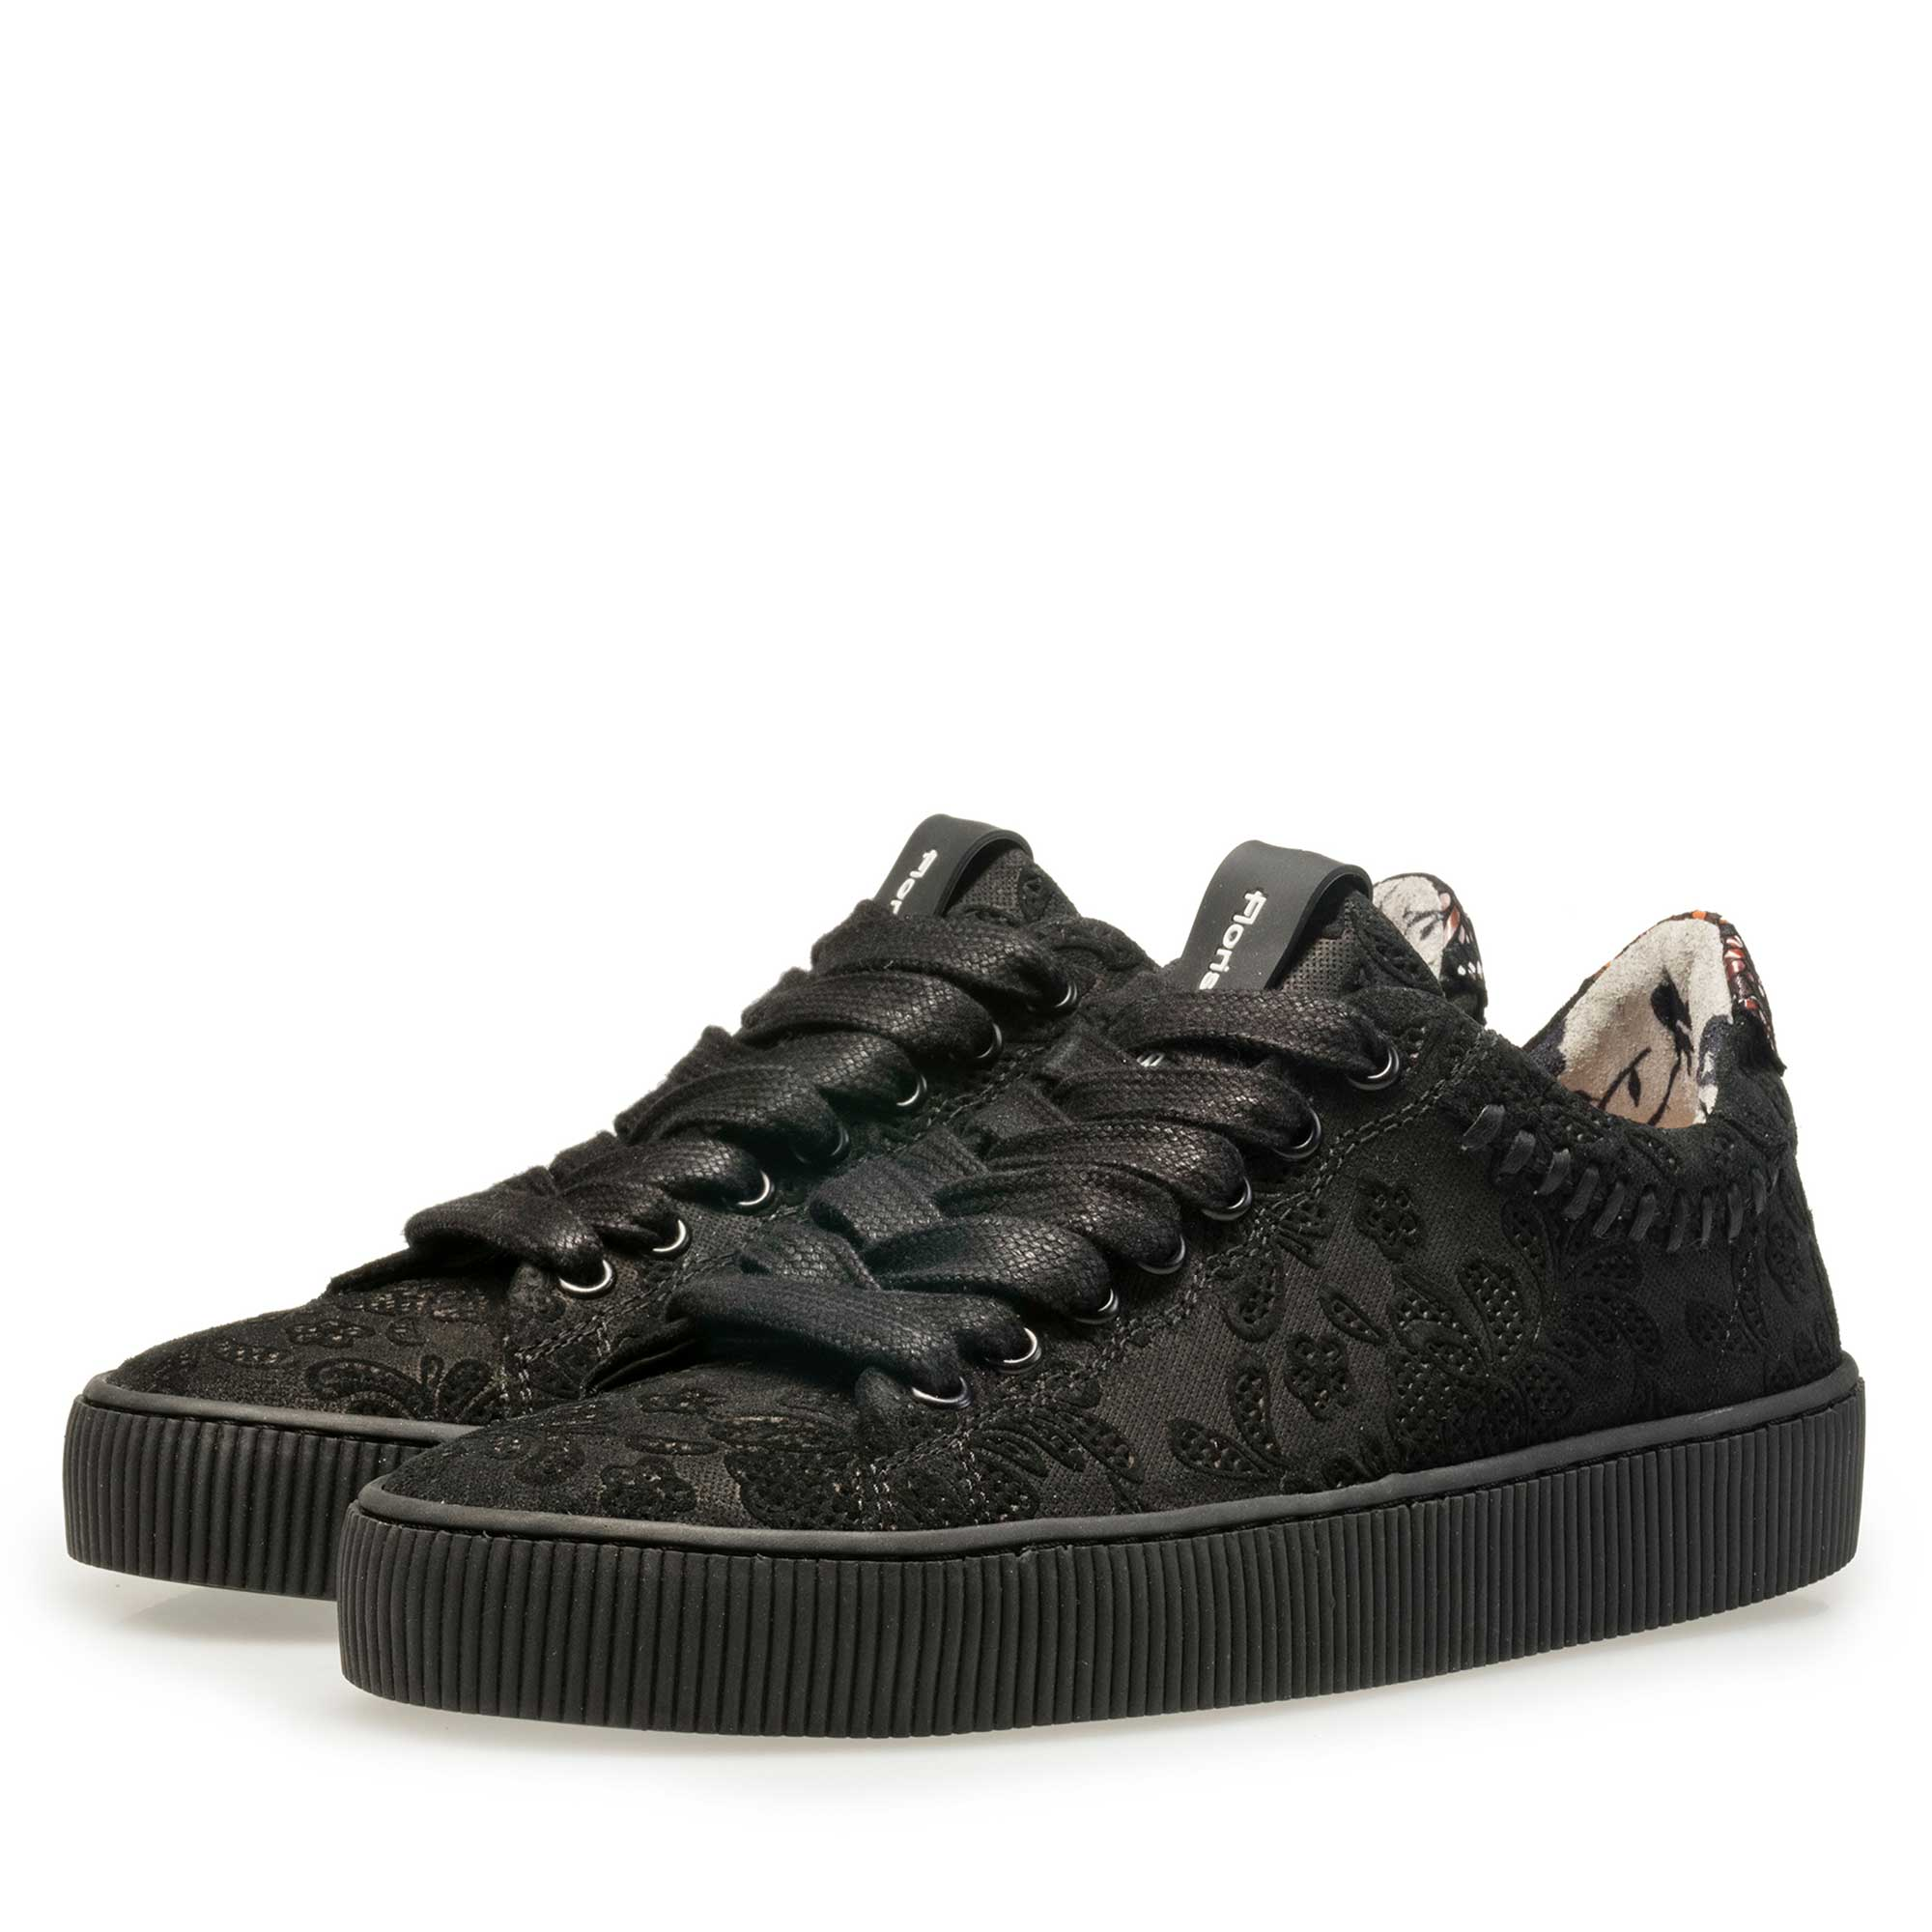 85215/01 - Floris van Bommel black suede leather sneaker